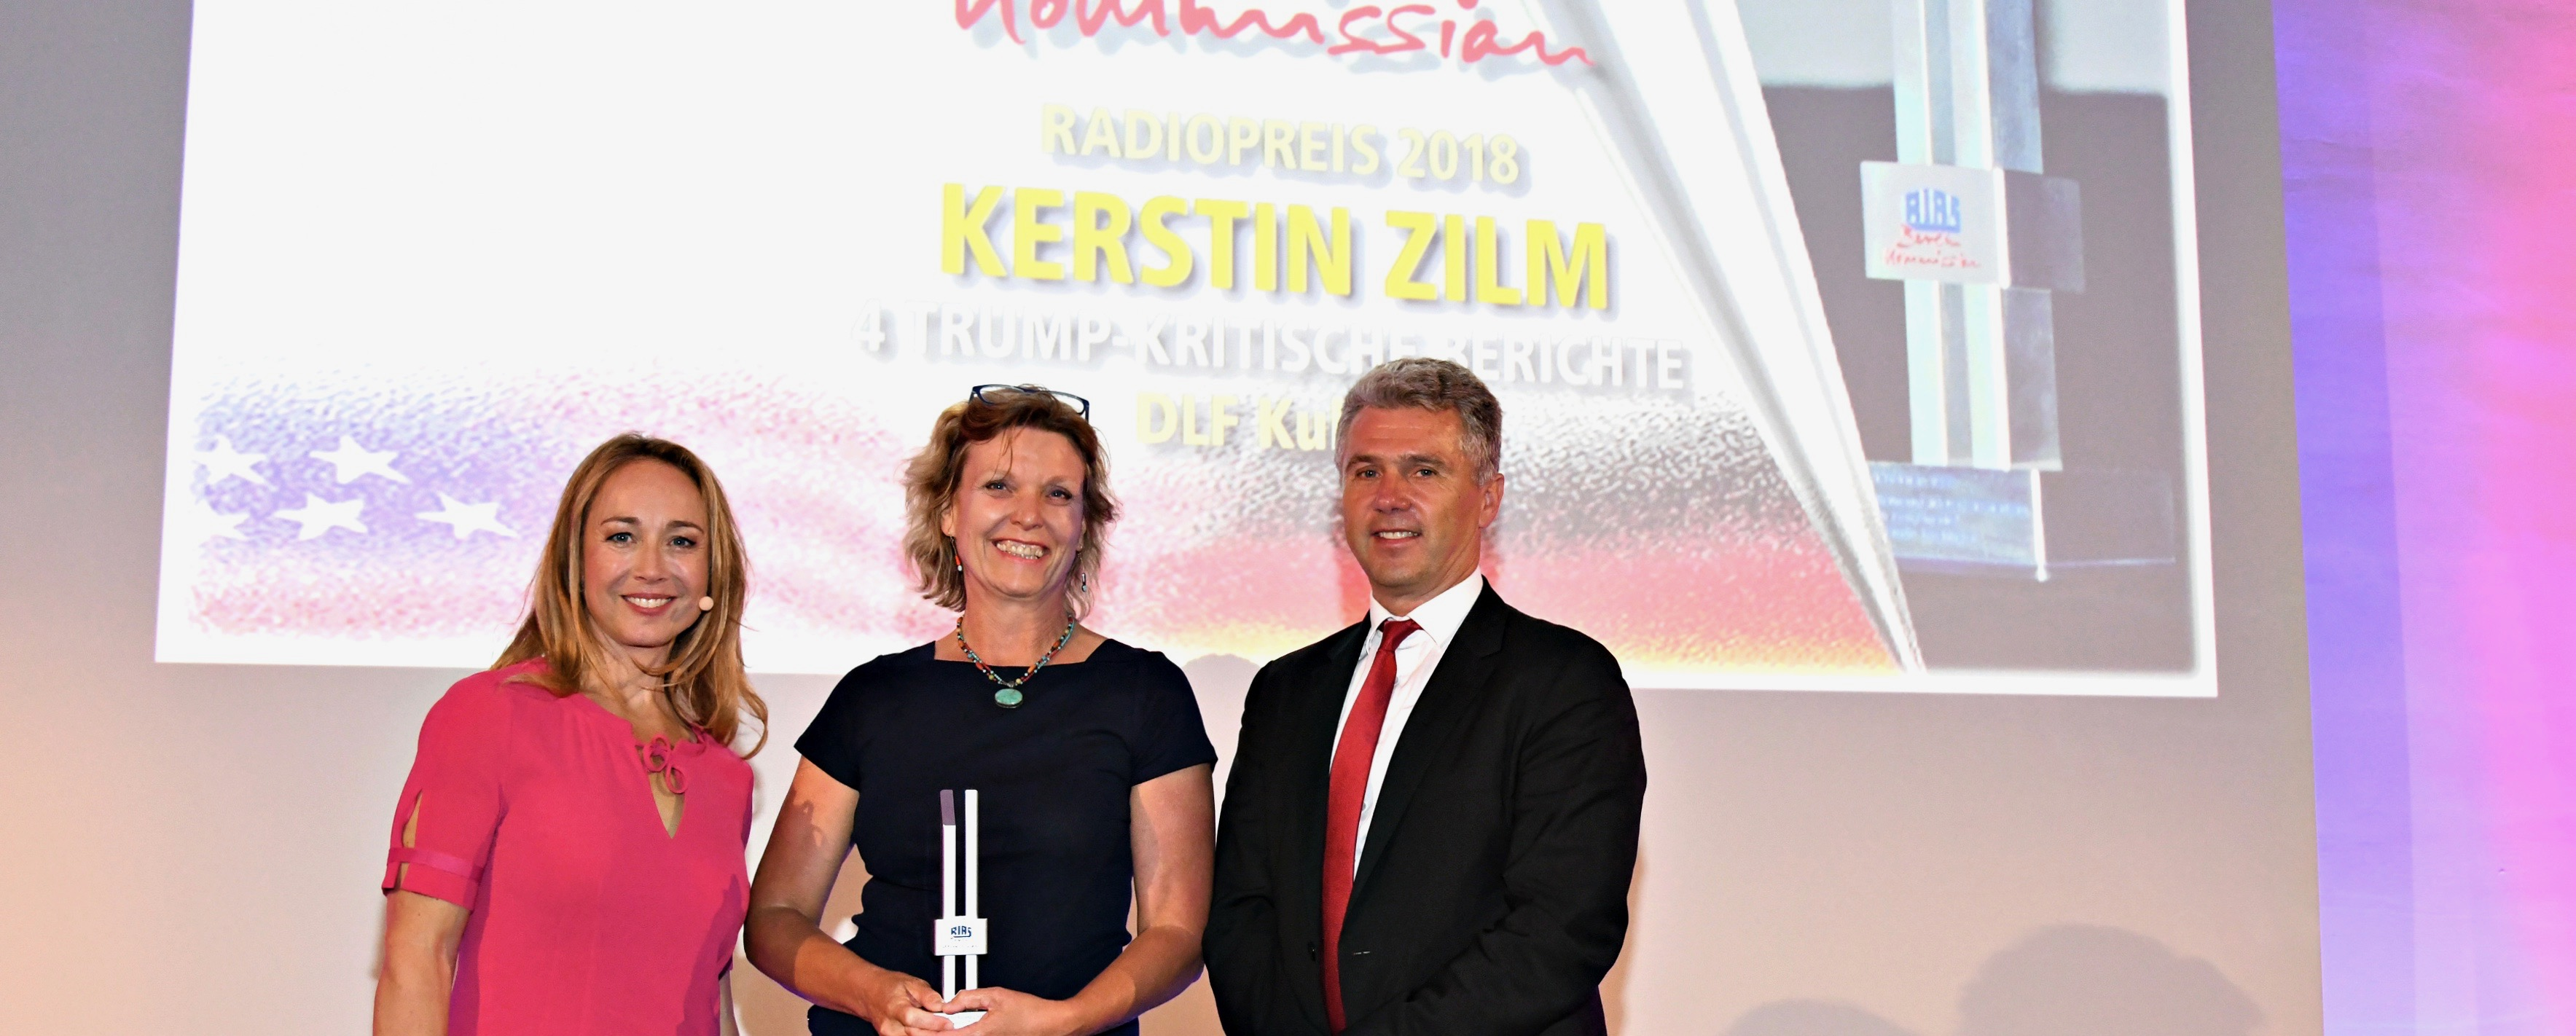 Award Ceremony RIAS Berlin Kommission 17.5.2018